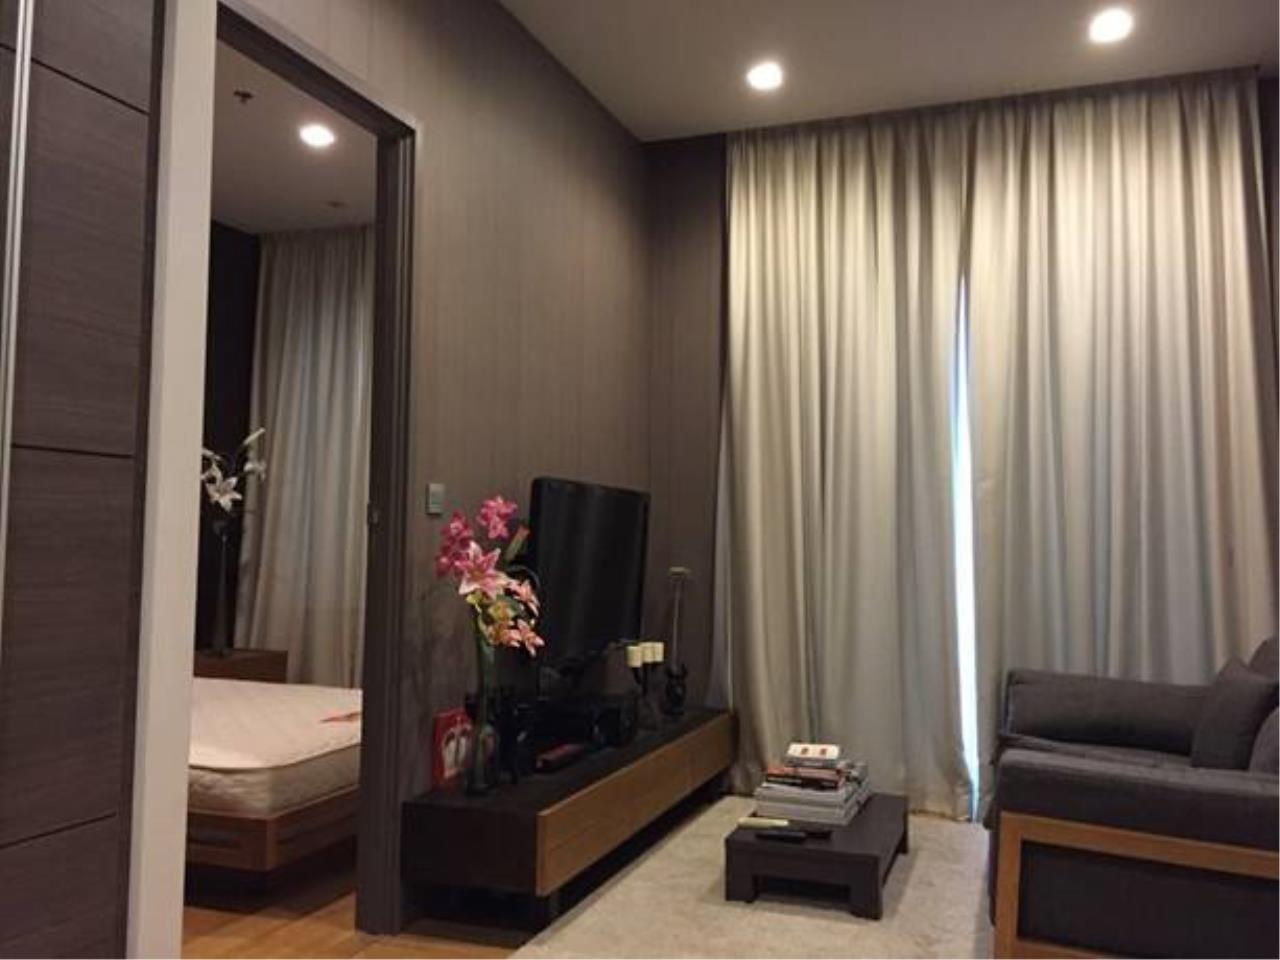 RE/MAX All Star Realty Agency's Keyne by Sansiri for sale/rent (BTS Thong Lor) 13